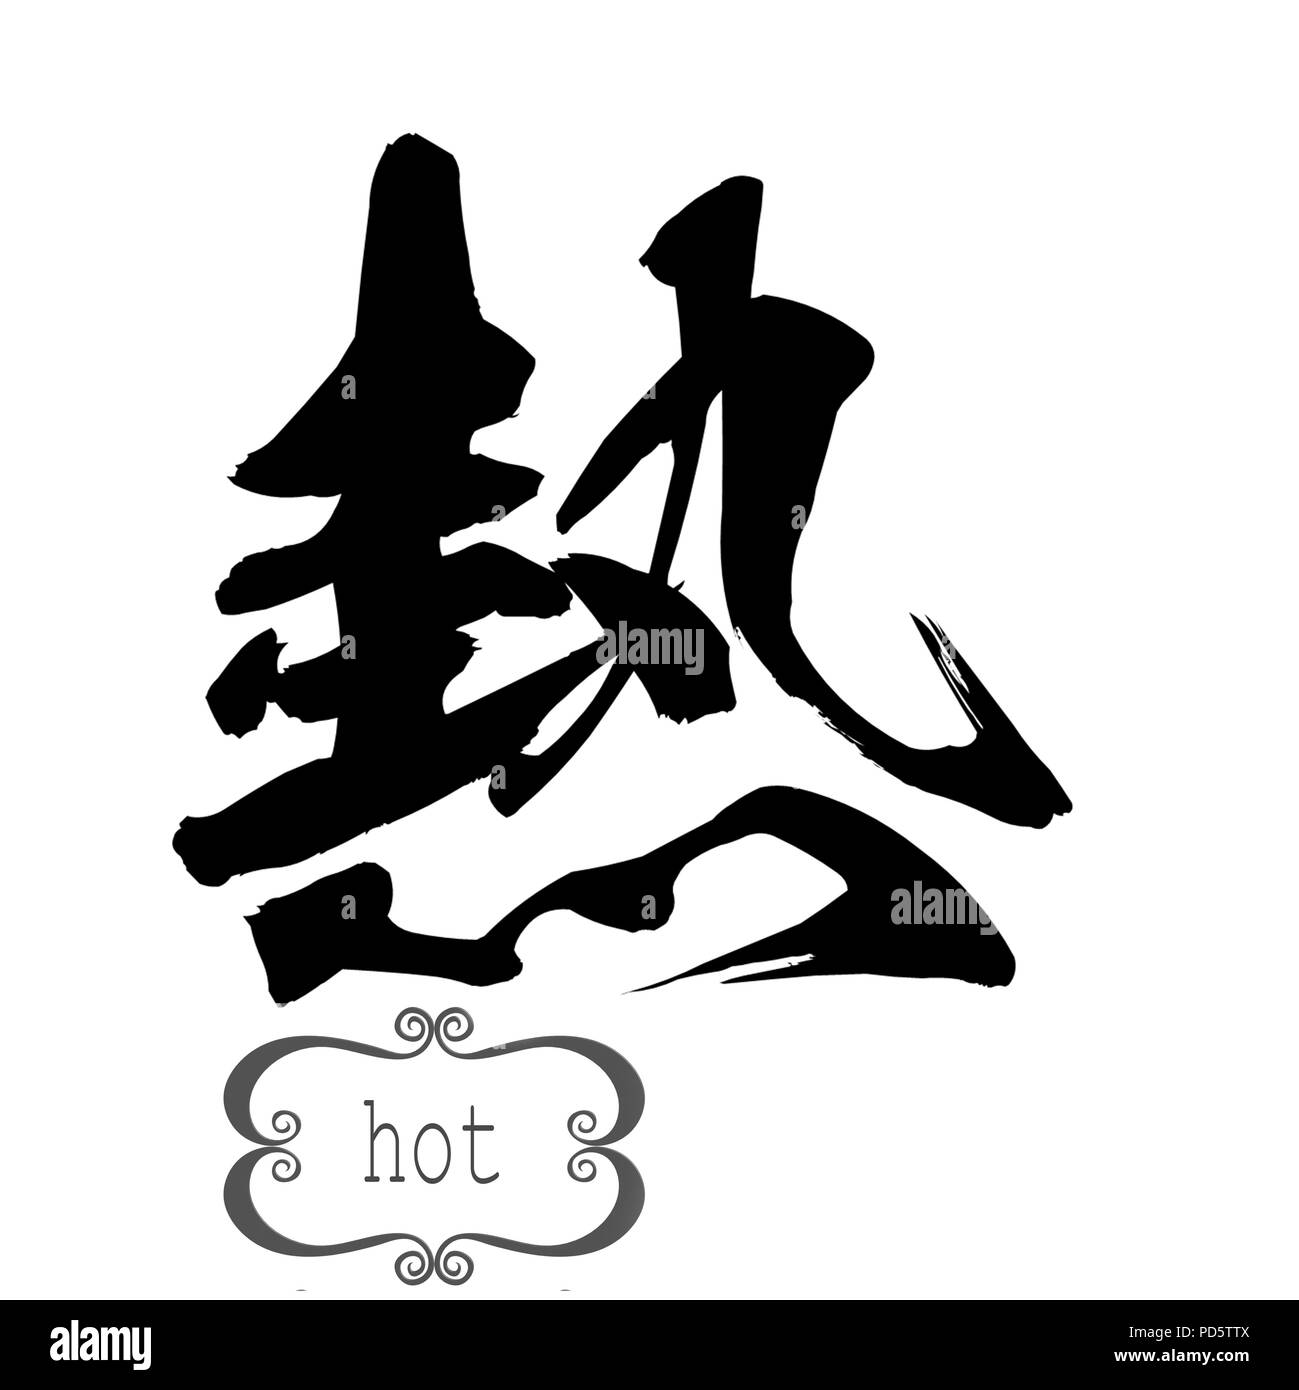 Calligraphy word of hot in white background. Chinese or Japanese. 3D rendering - Stock Image